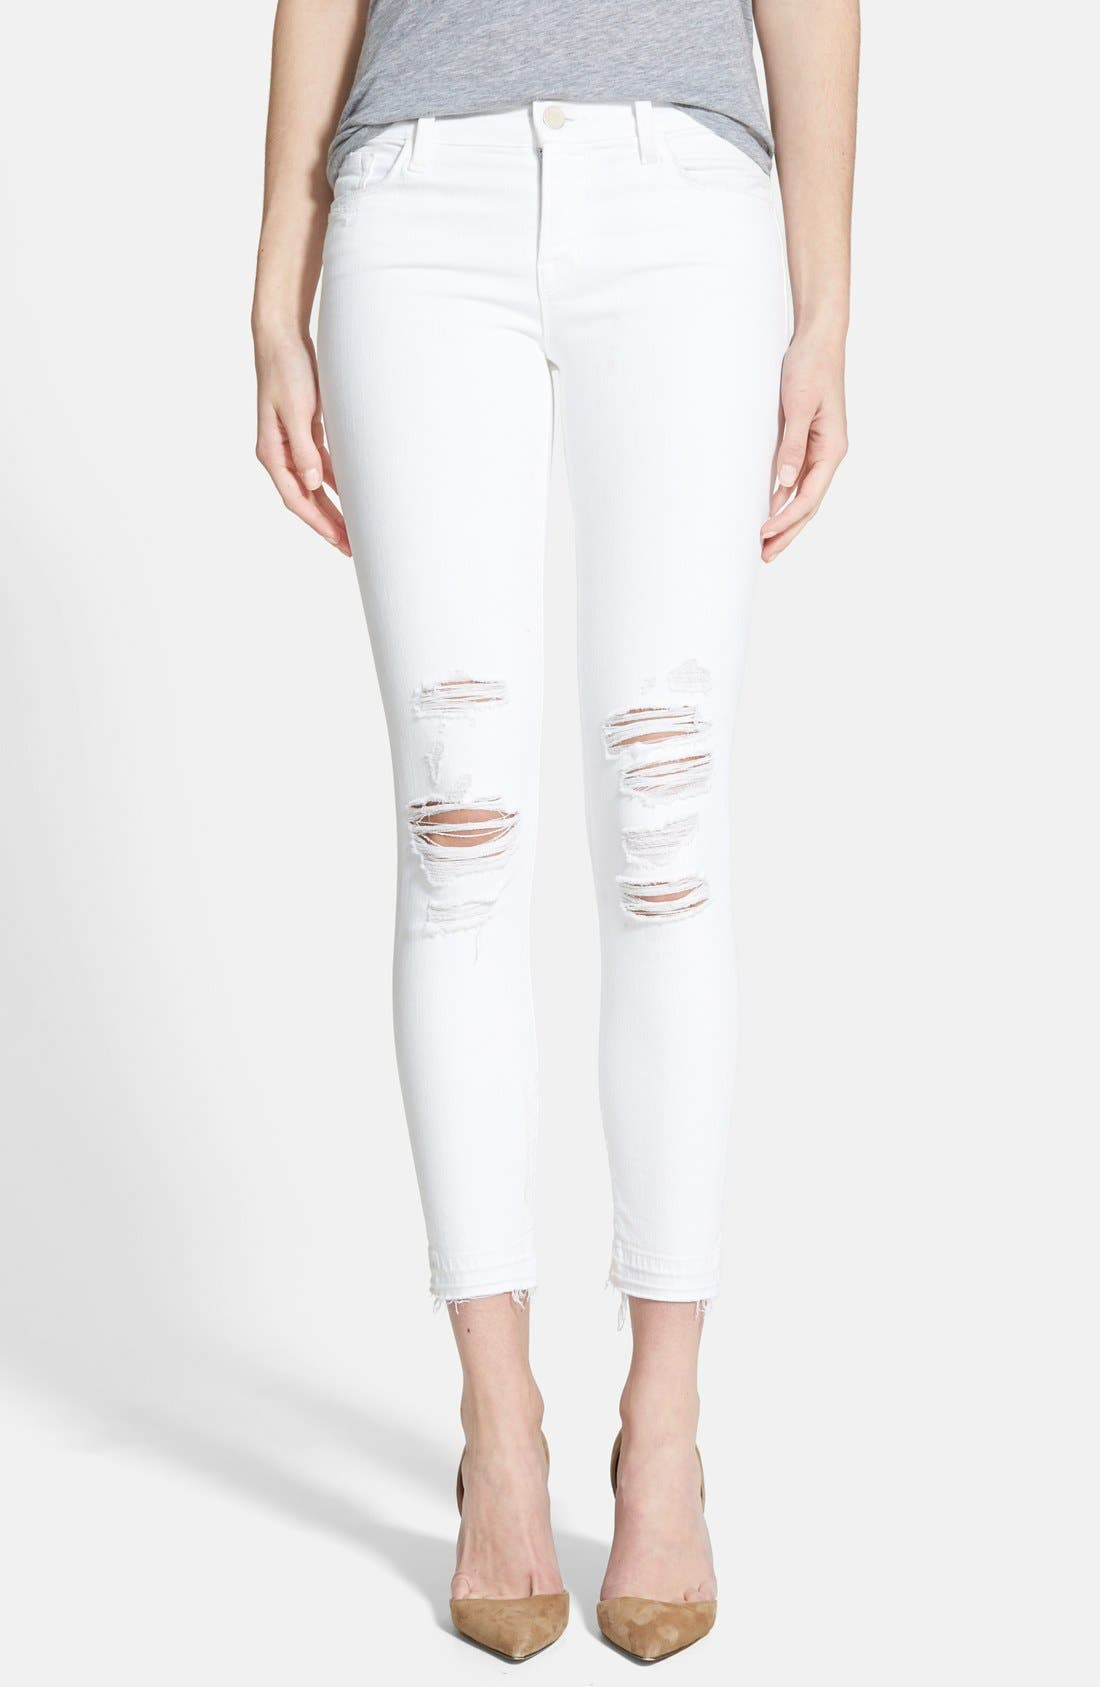 Alternate Image 1 Selected - J Brand Low Rise Crop Jeans (Demented White Distressed)